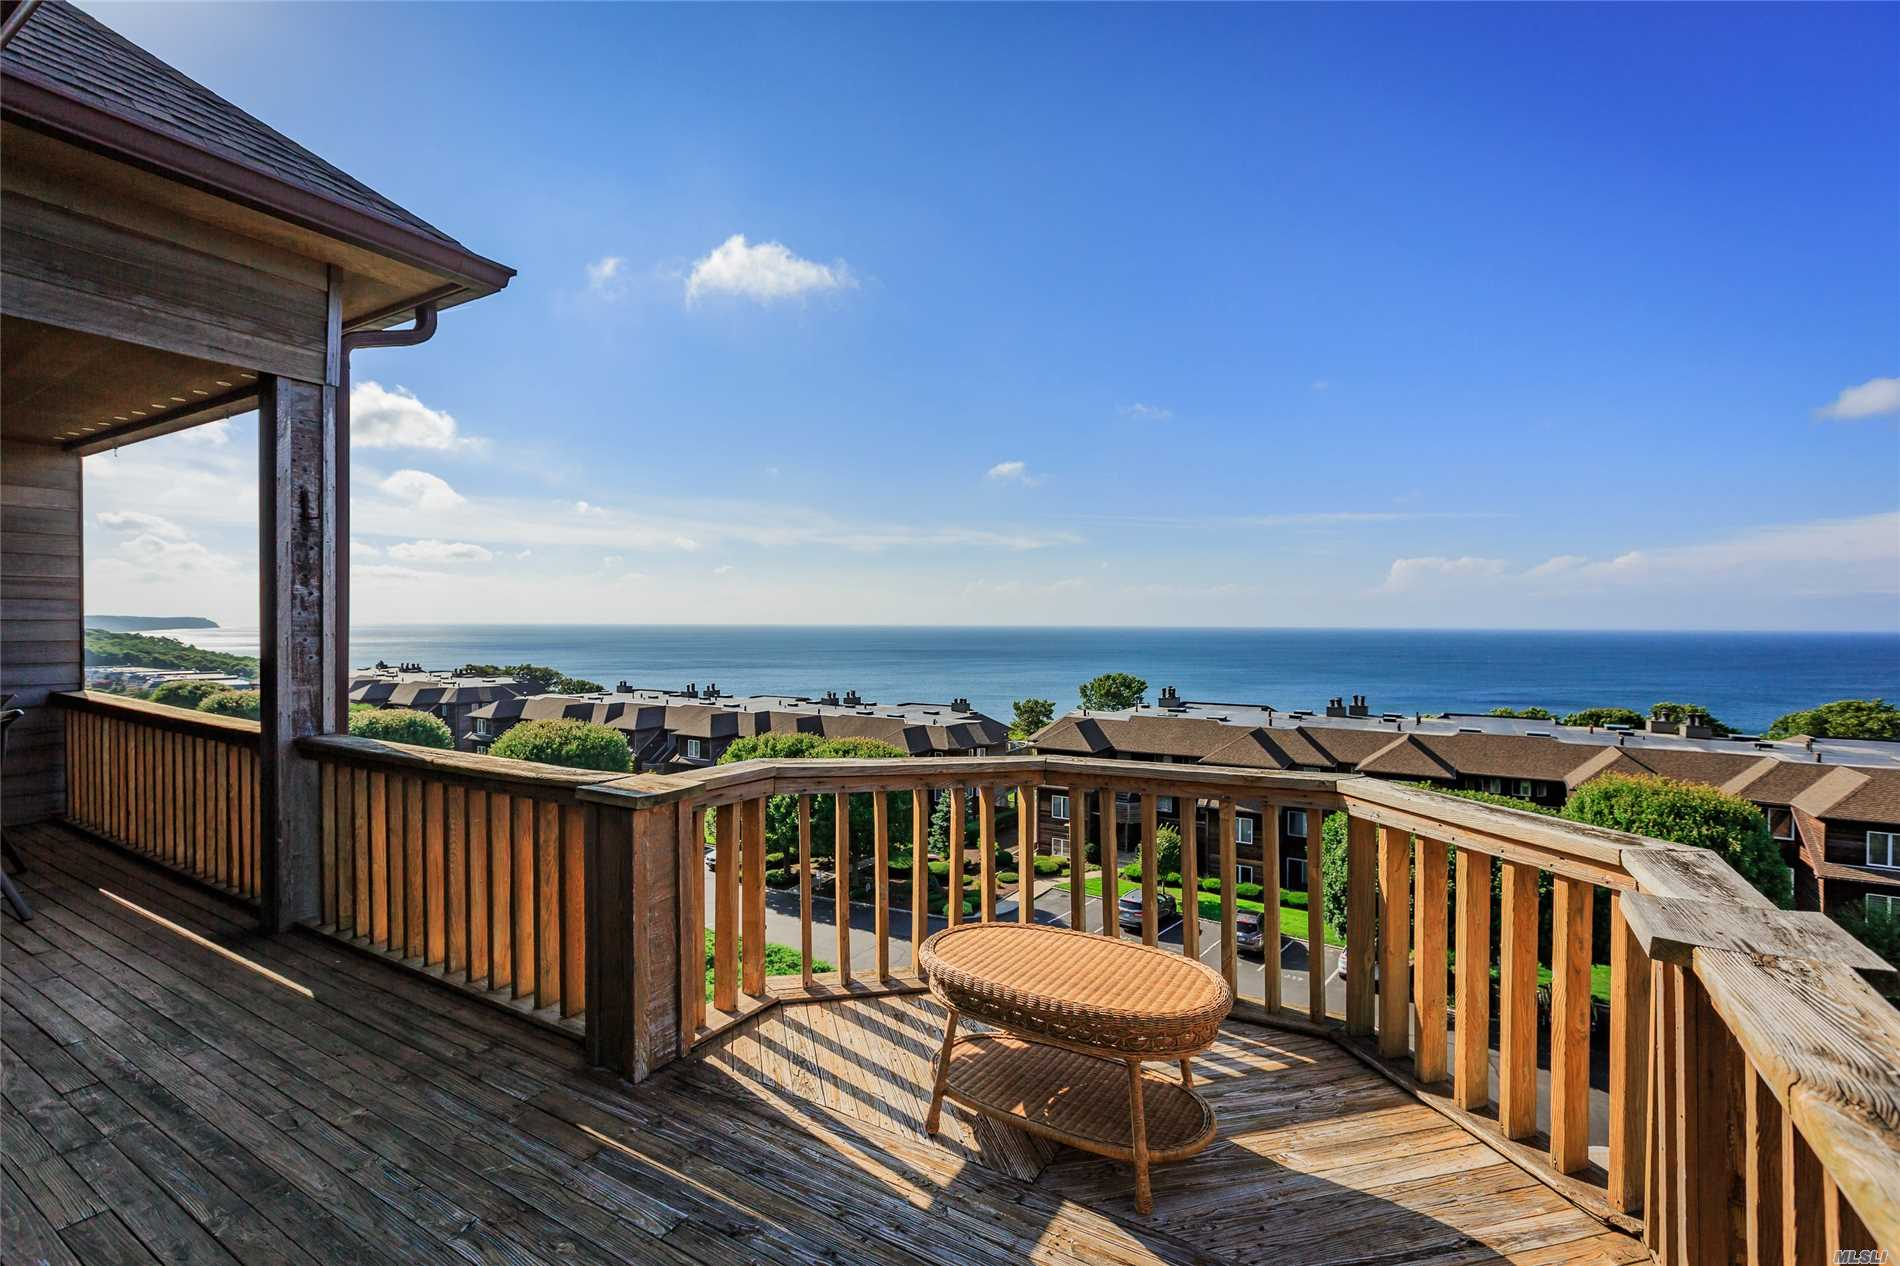 Top floor light and bright end-unit at the bluffs in Baiting Hollow! Rarely available! Enjoy views of the Long Island sound and take in the sunsets as you relax and unwind. Beach access right across the parking lot. You cannot get a view like this for this price anywhere else. Private golf course next door with reasonable rates. Start your North Fork lifestyle right here!